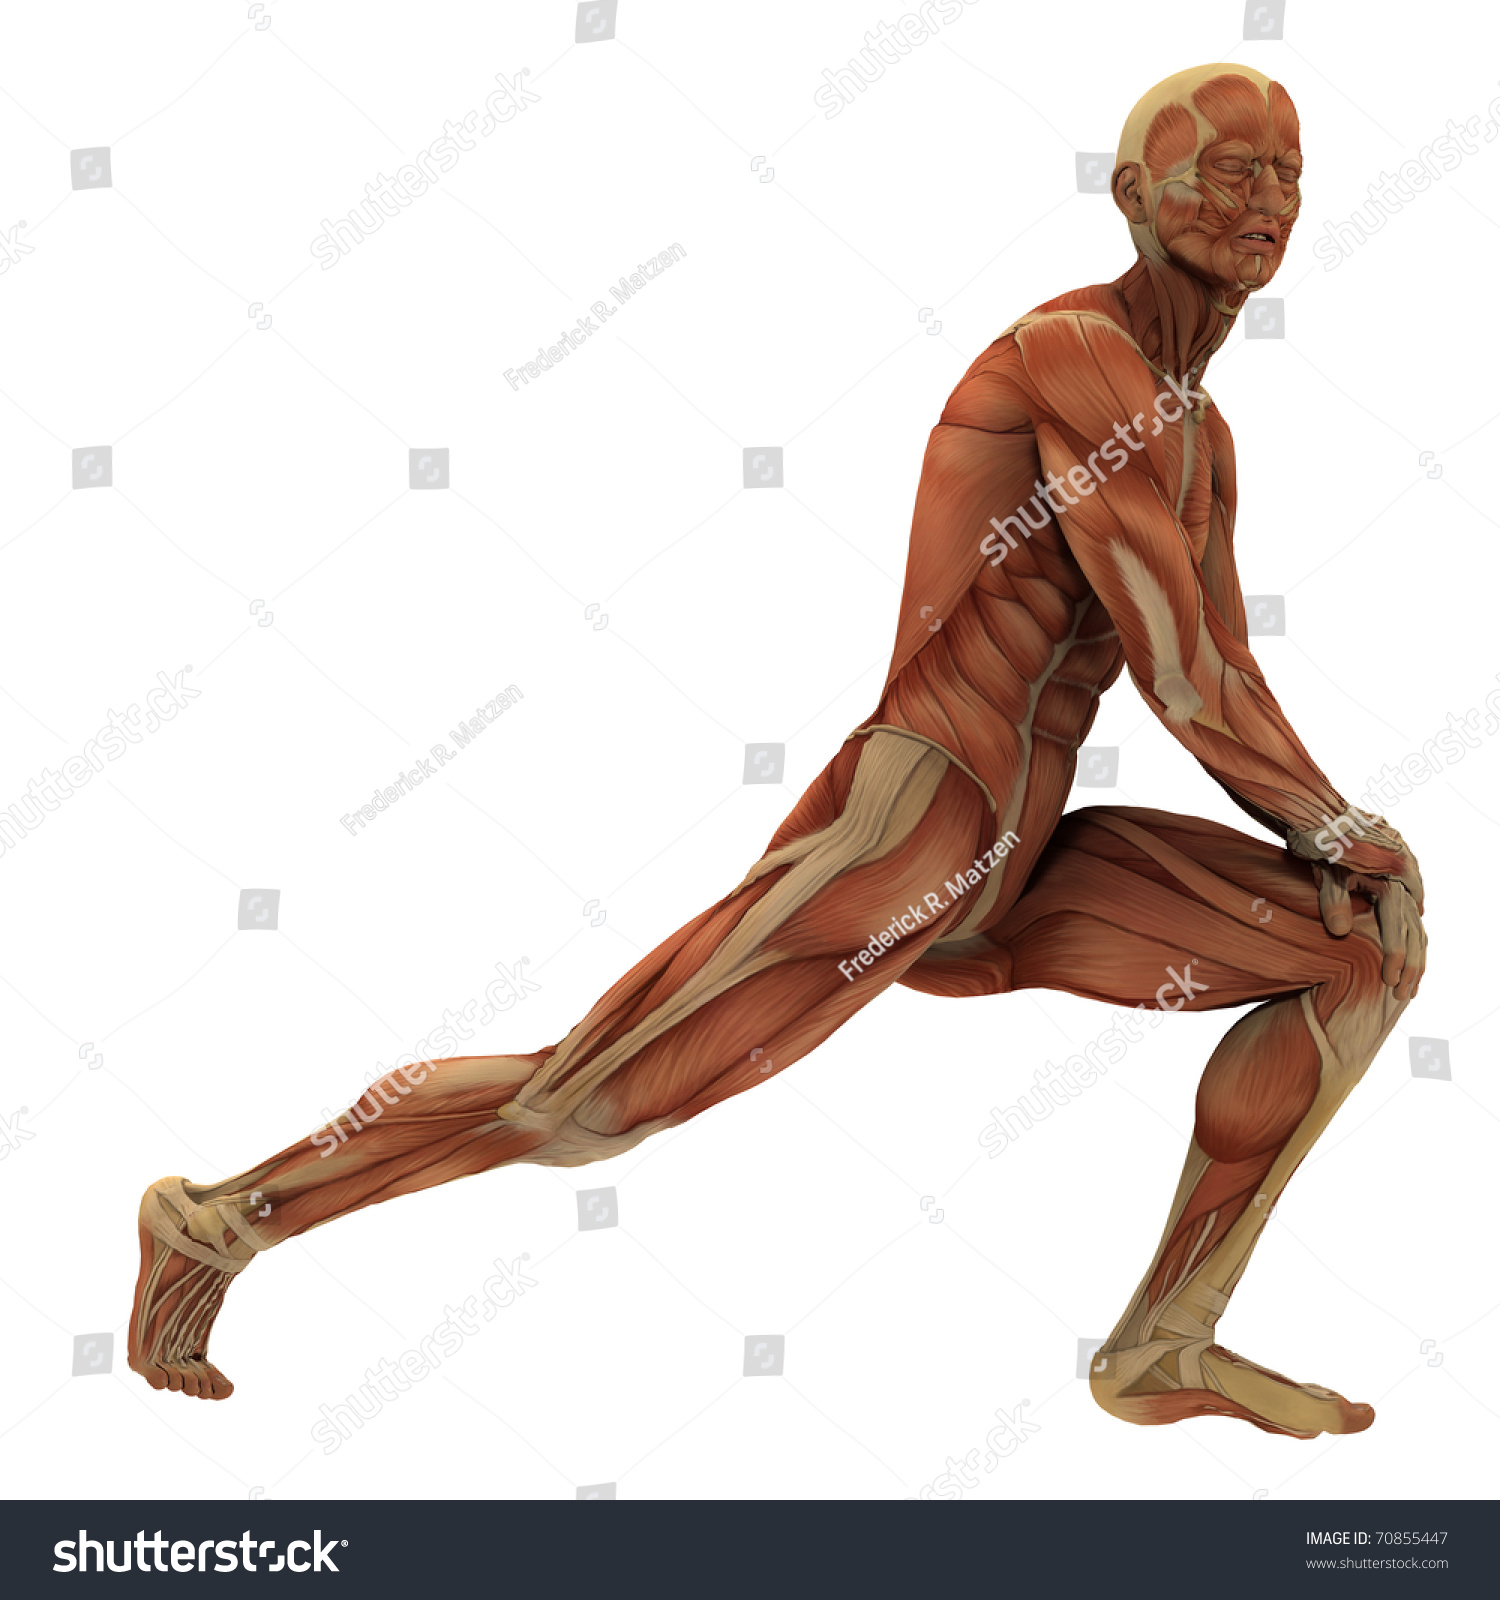 Male Figure In A Sports Pose Without Skin Exposing The Muscle